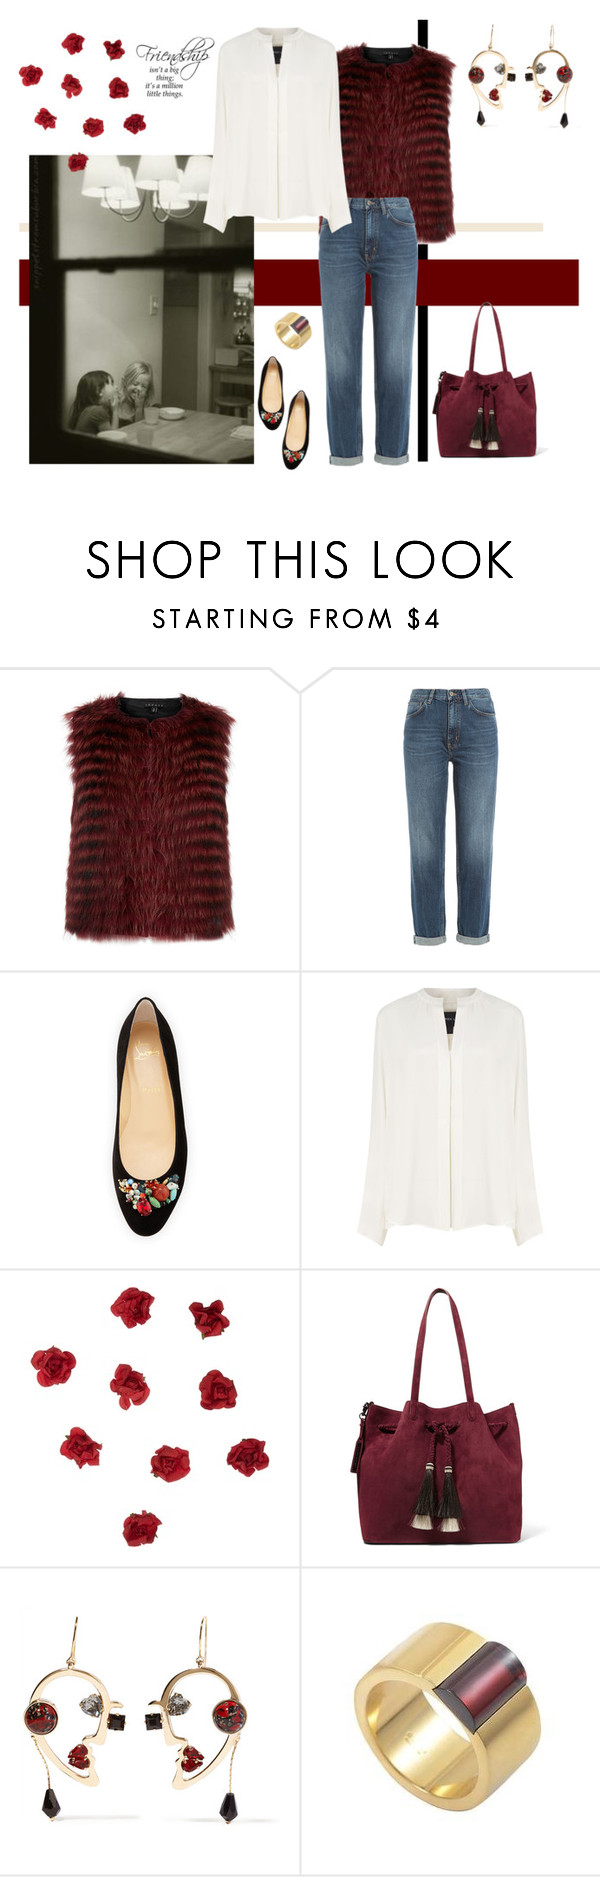 """""""Friendship"""" by namekristy ❤ liked on Polyvore featuring Theory, M.i.h Jeans, Christian Louboutin, Derek Lam, John Lewis, Loeffler Randall and Etro"""